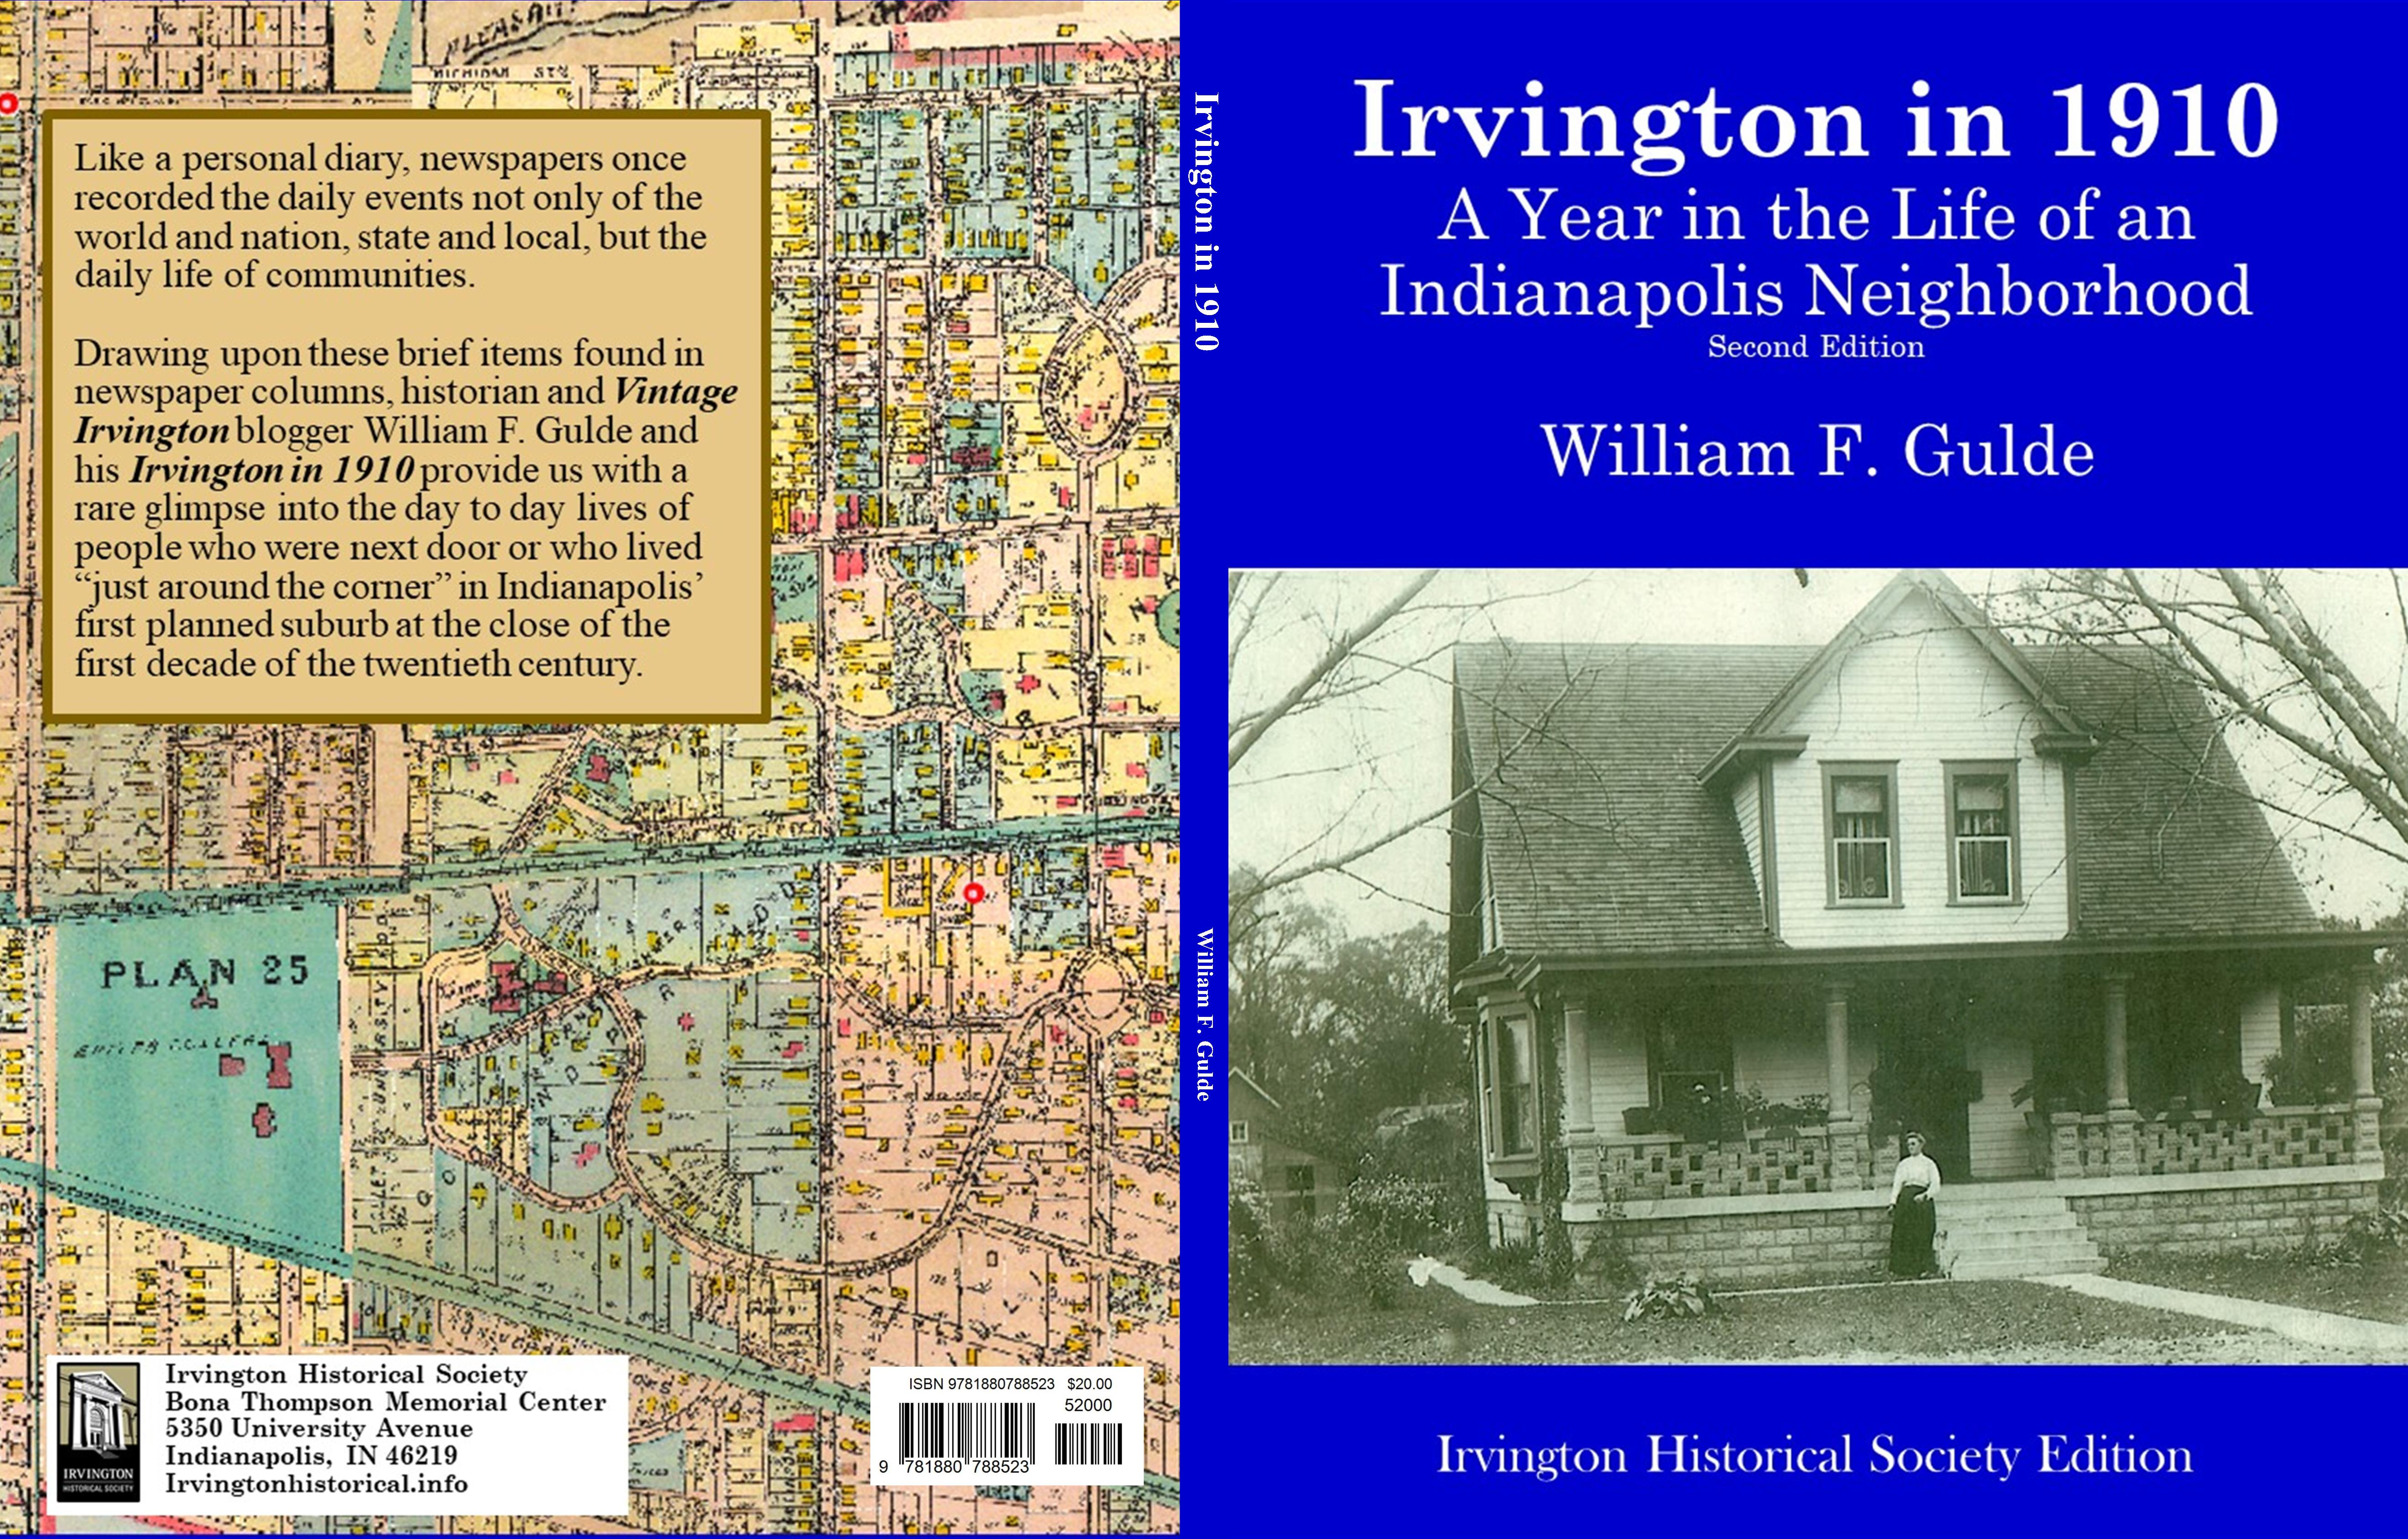 Irvington in 1910 cover image